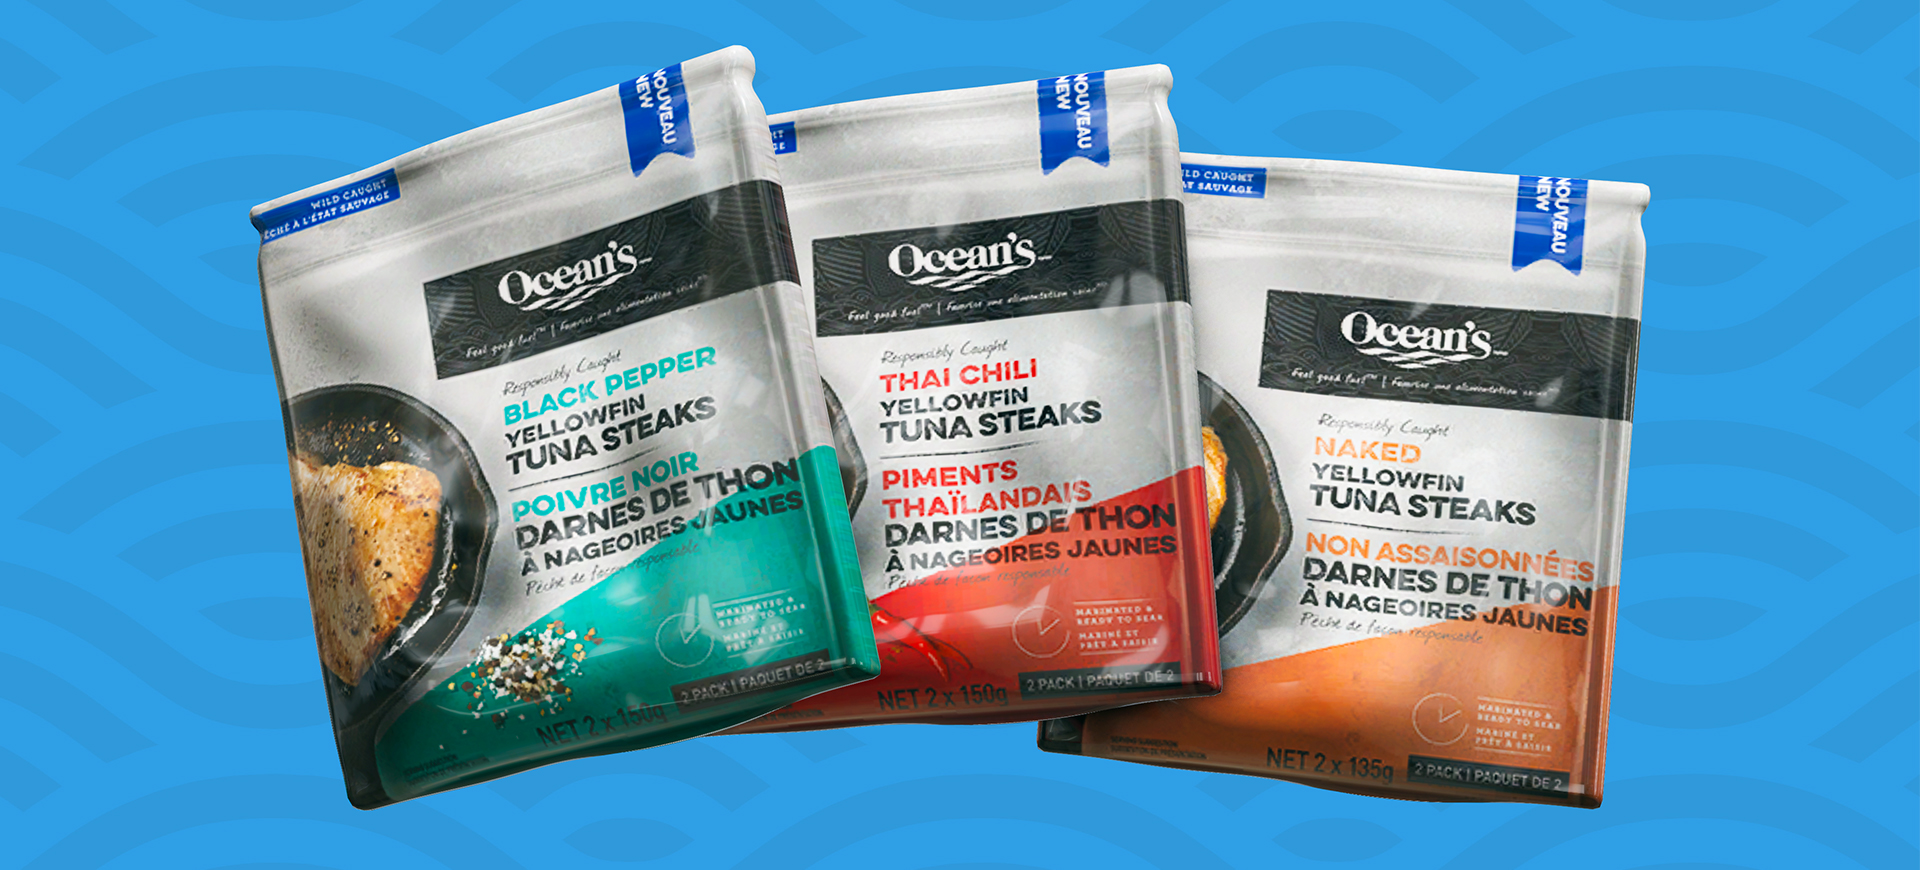 Bold. Simple. Tasty. Ocean's Tuna Steaks are Finally Here!​